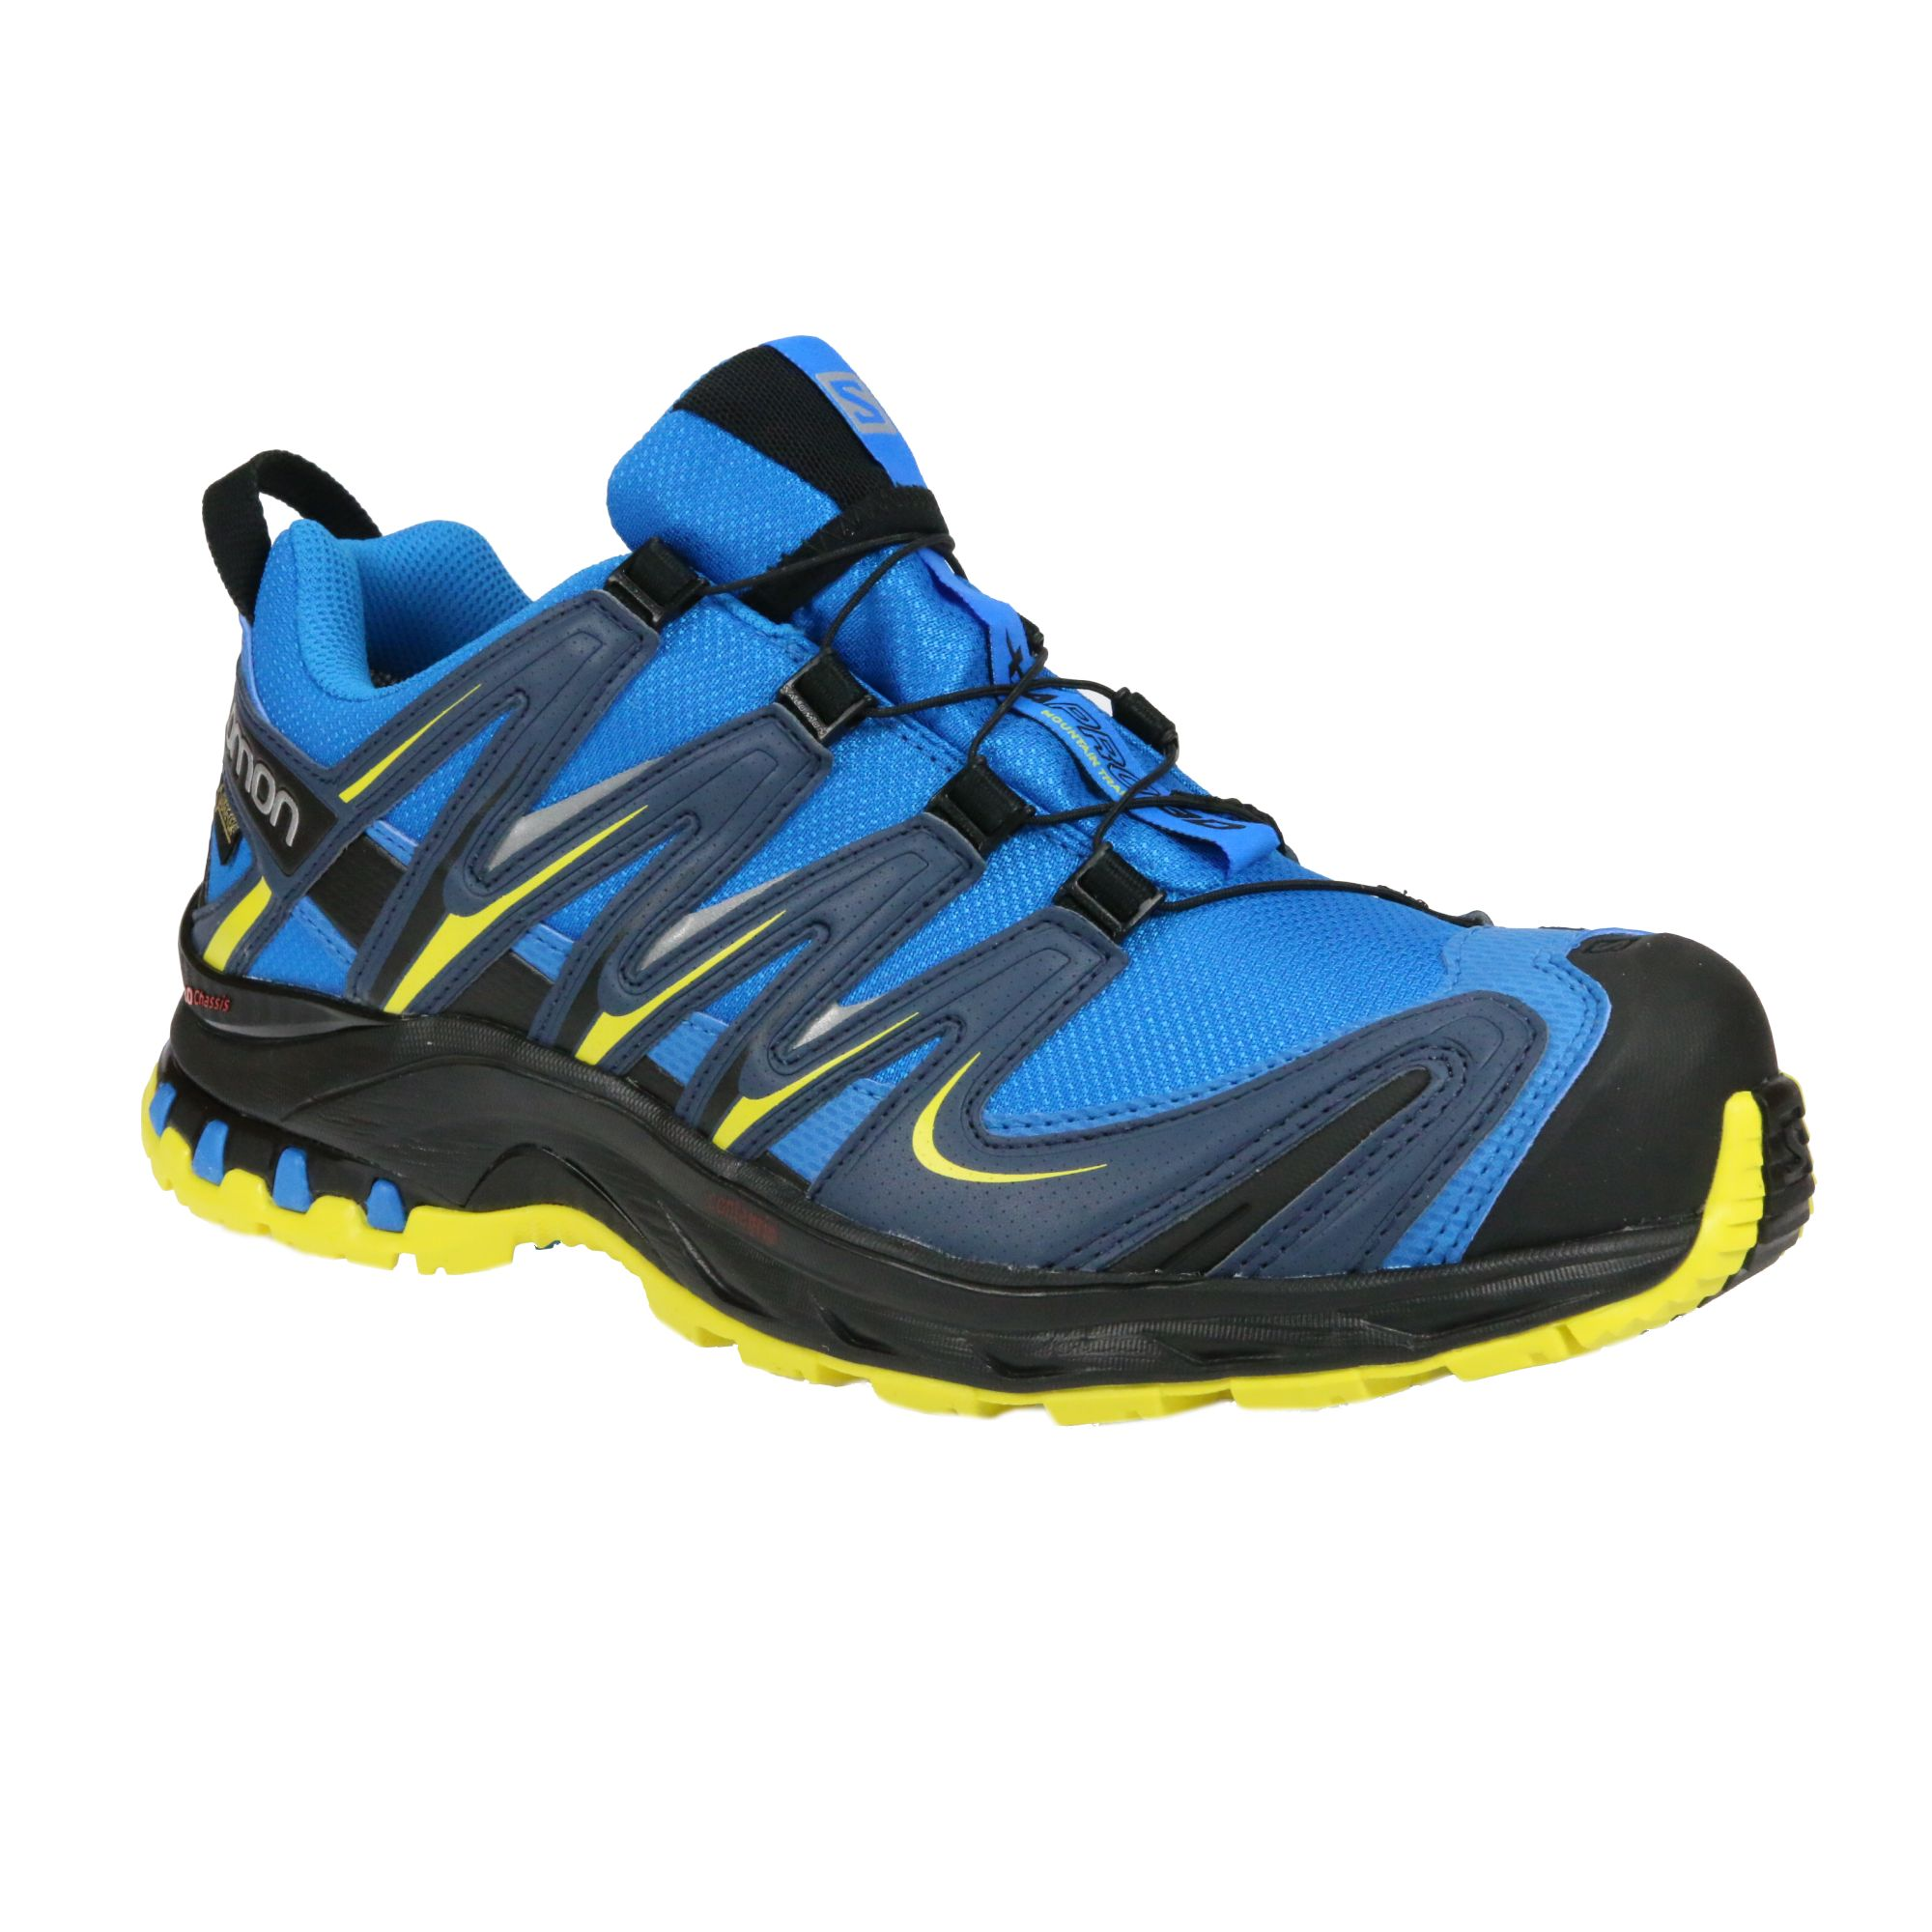 Ebay Mens Trail Shoes